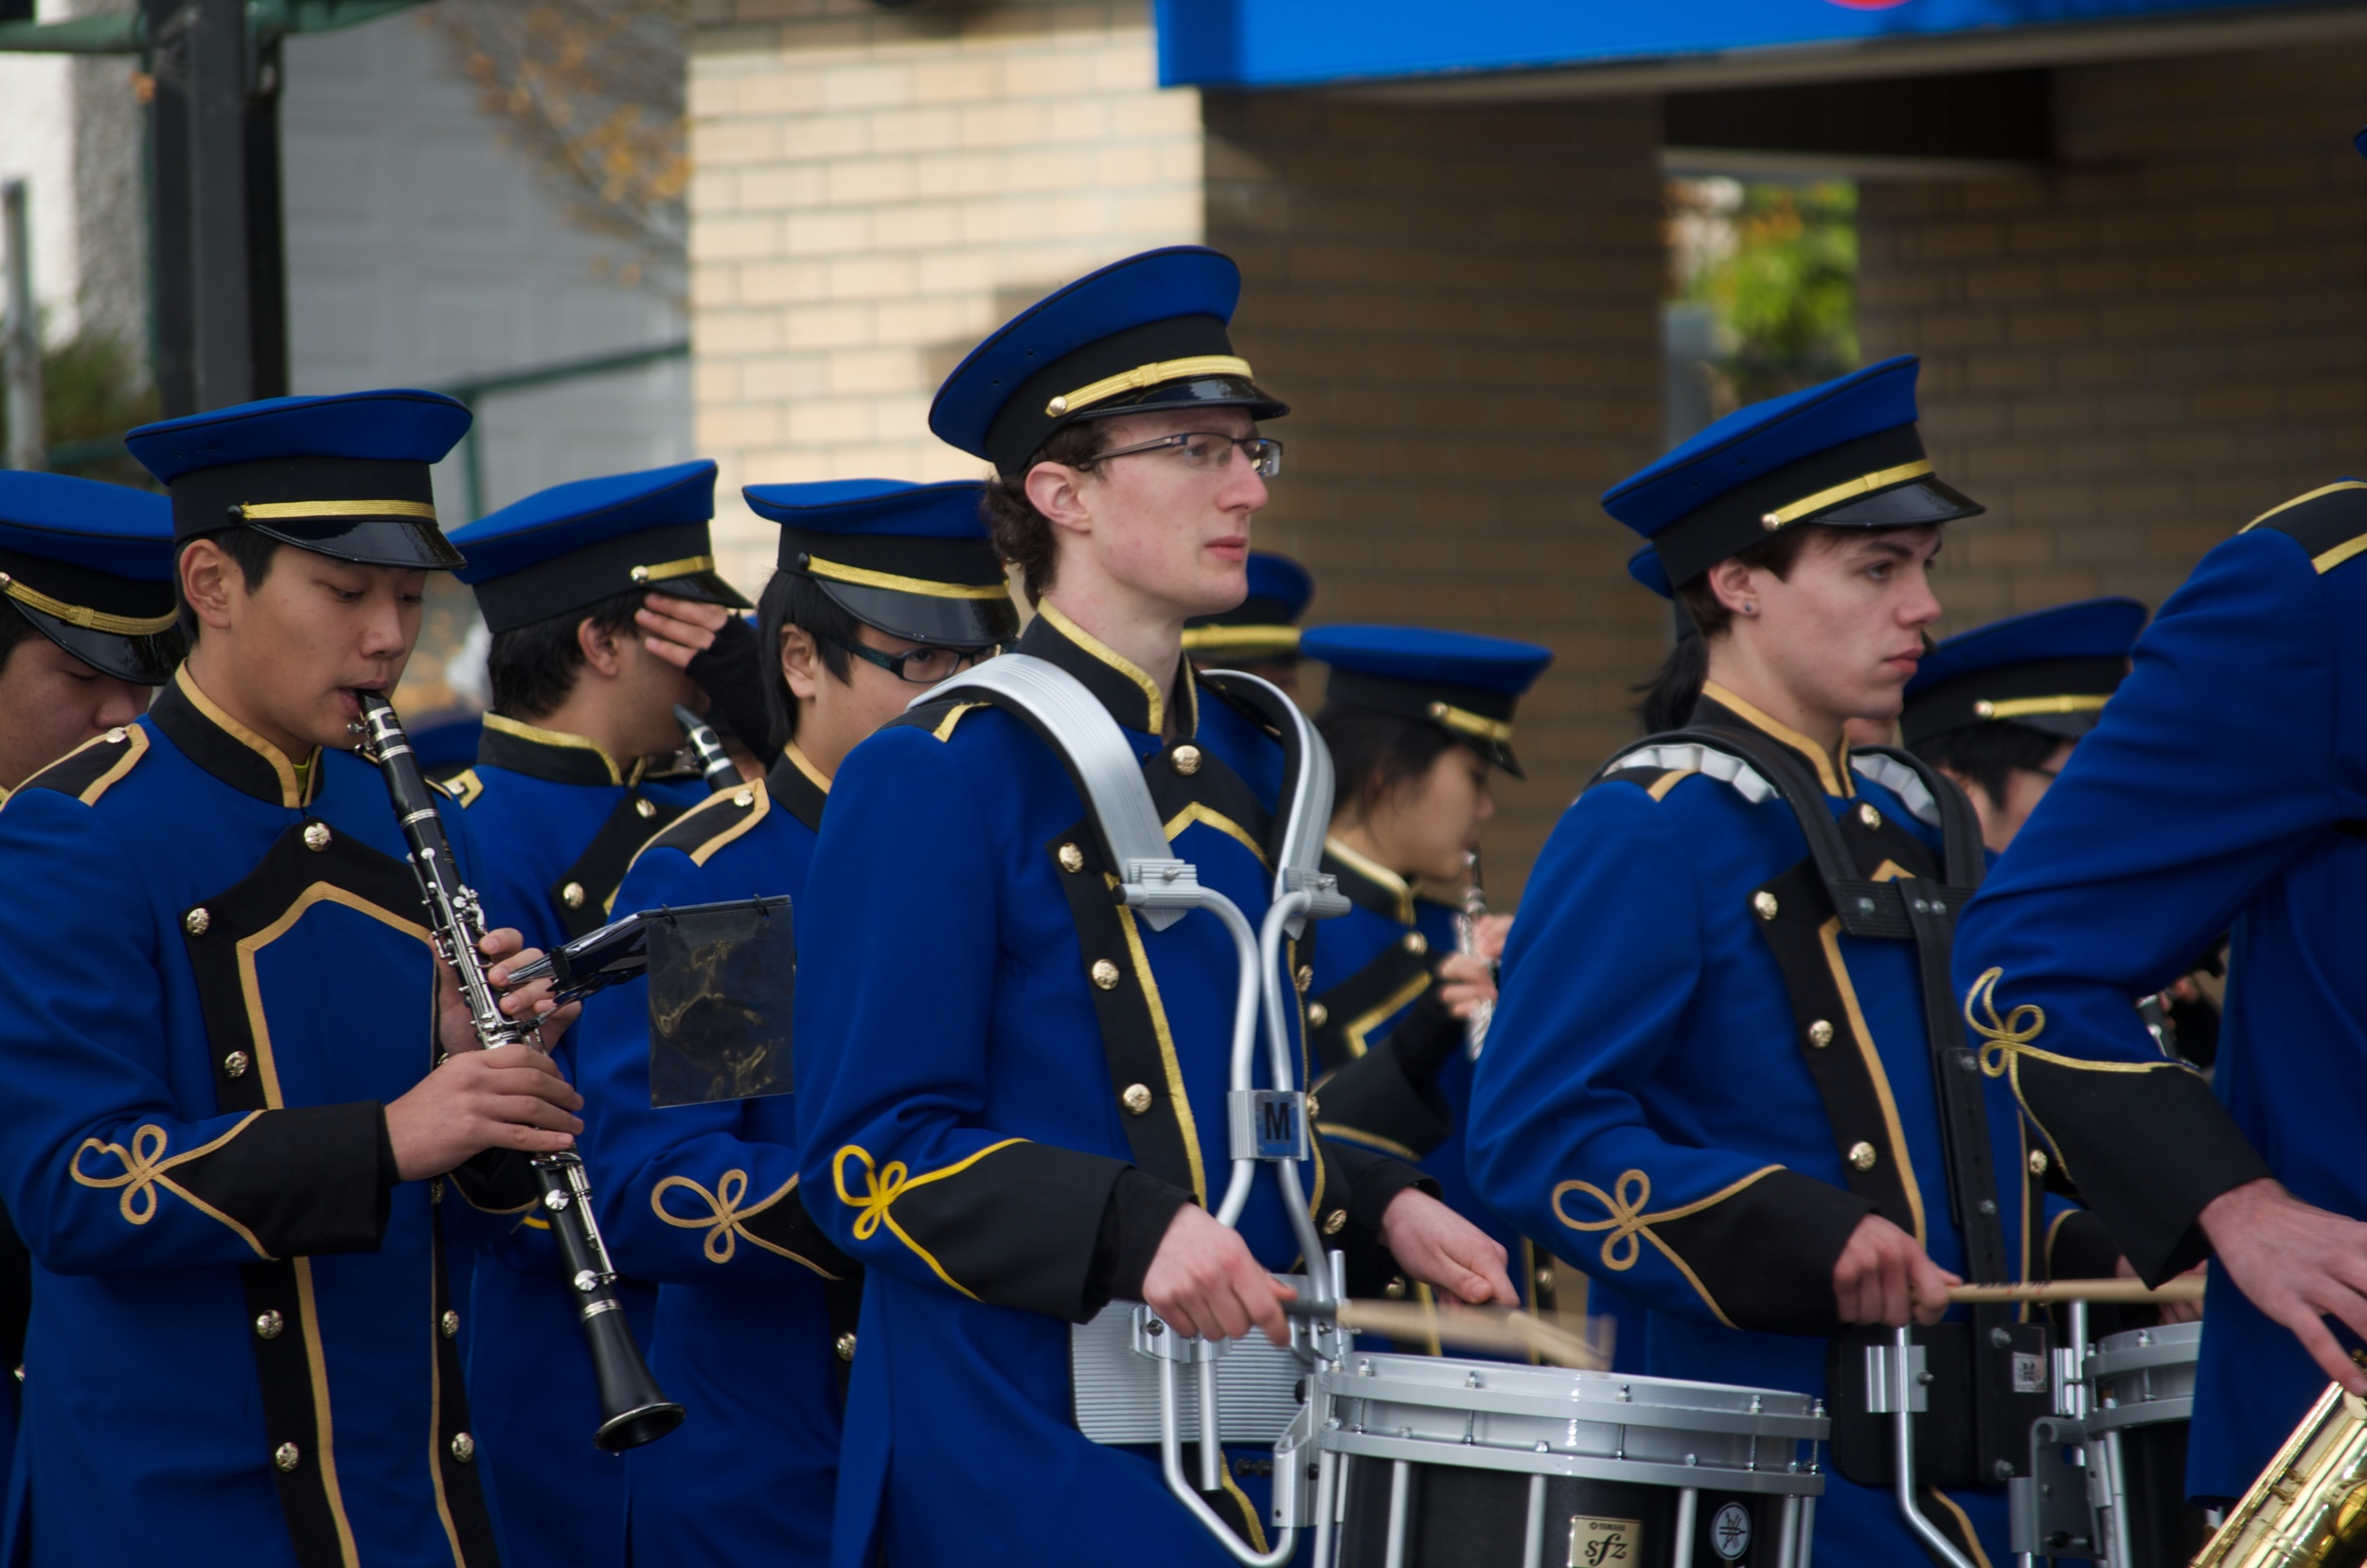 Playing Snare Drum on Remembrance Day